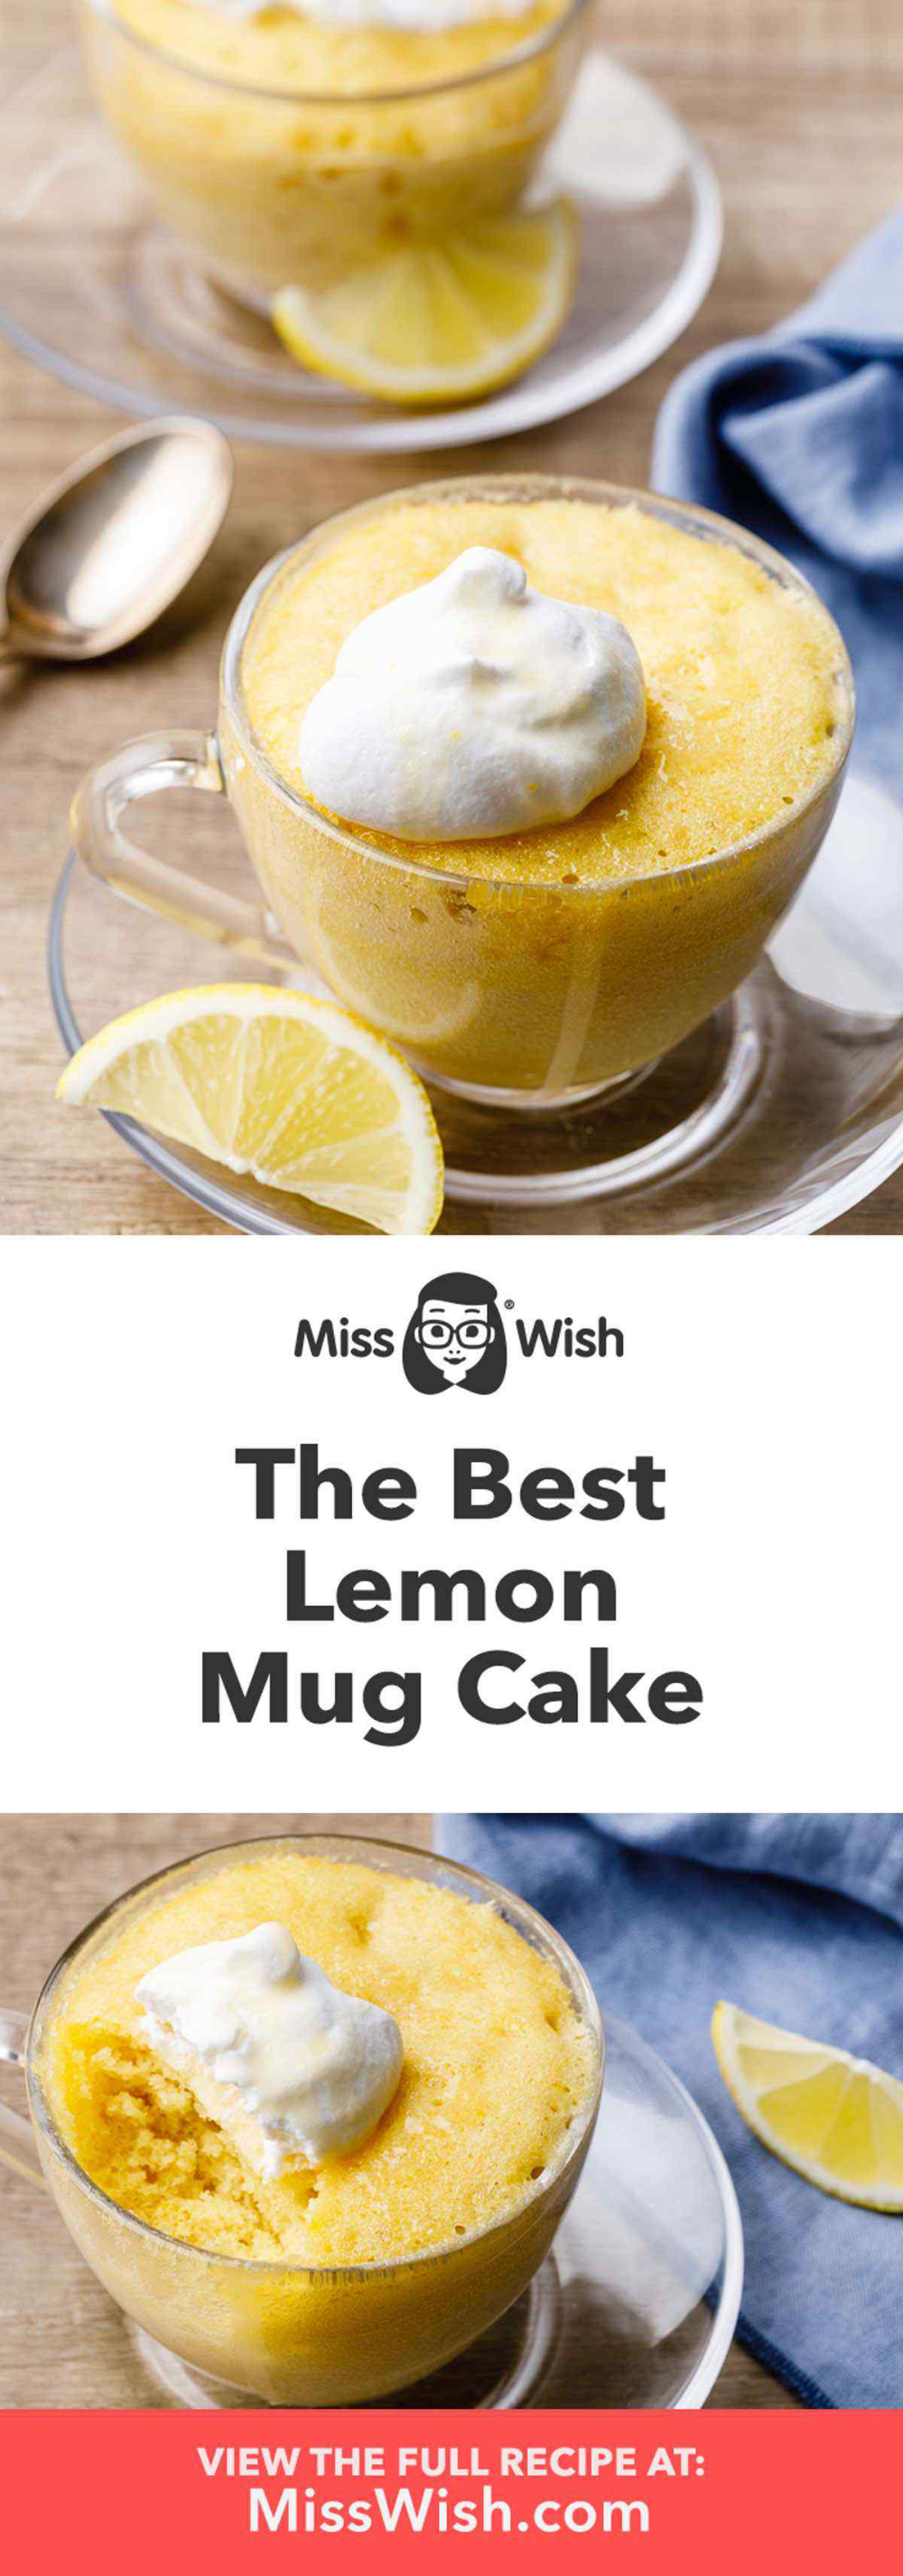 How to Make the Best Homemade Lemon Mug Cake | Recipe ...